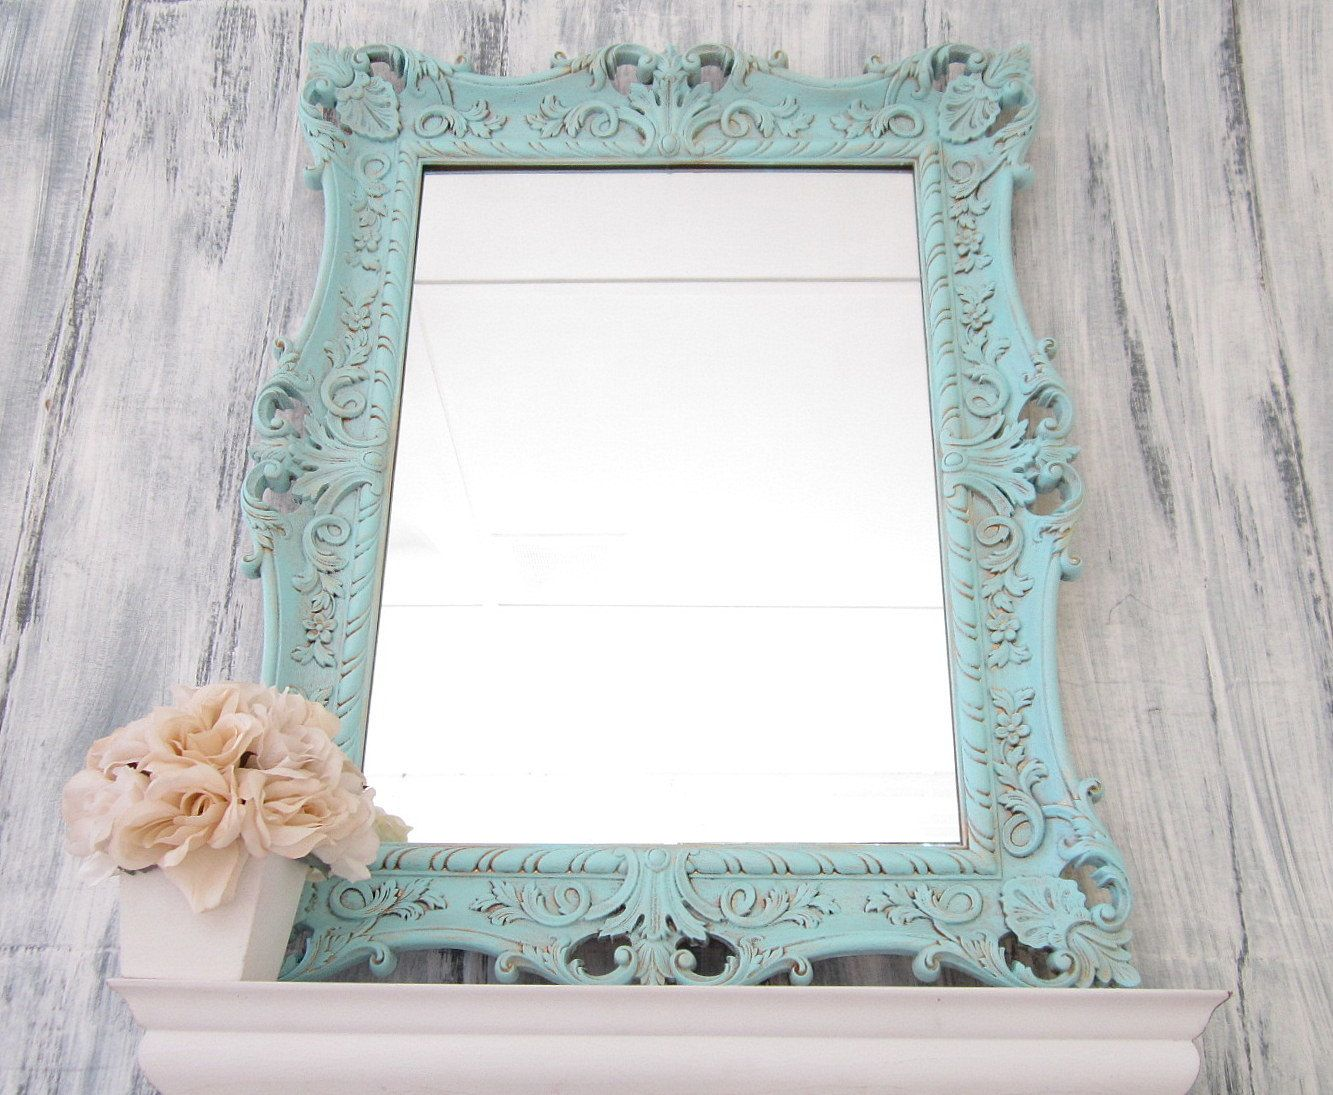 Teal Blue Mirror FRENCH COUNTRY Home MIRROR For Sale Syroco Vintage ...